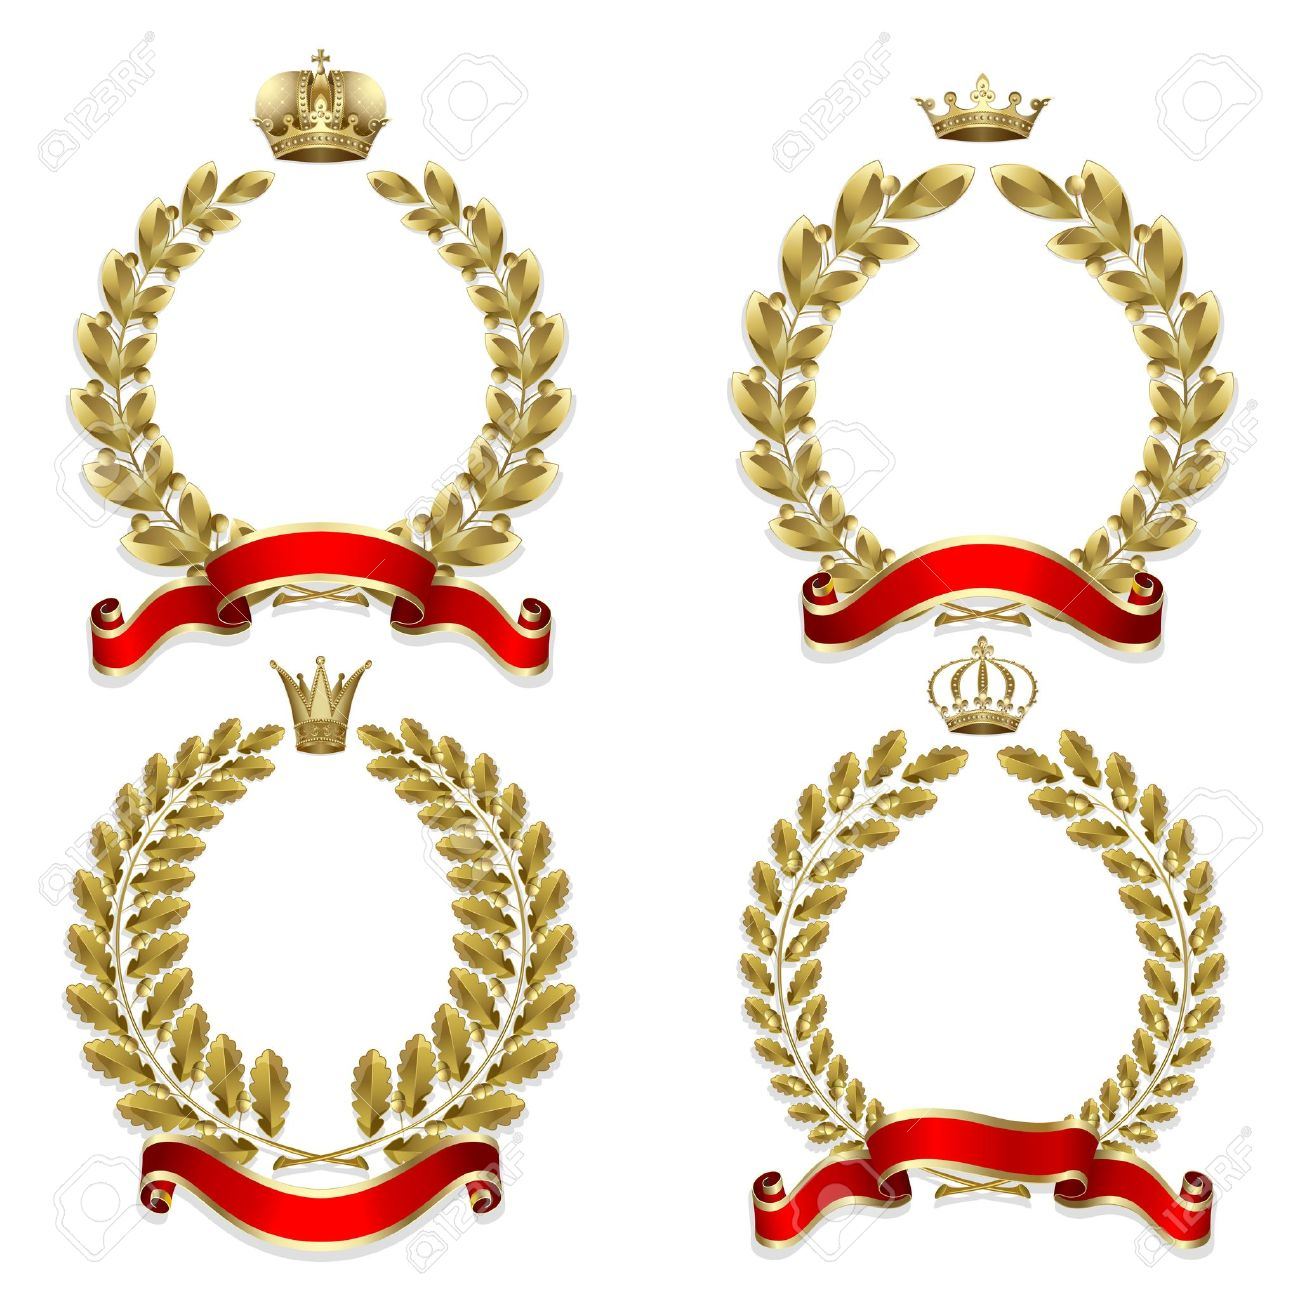 Set from gold laurel and oak wreath on the white background - 10481593